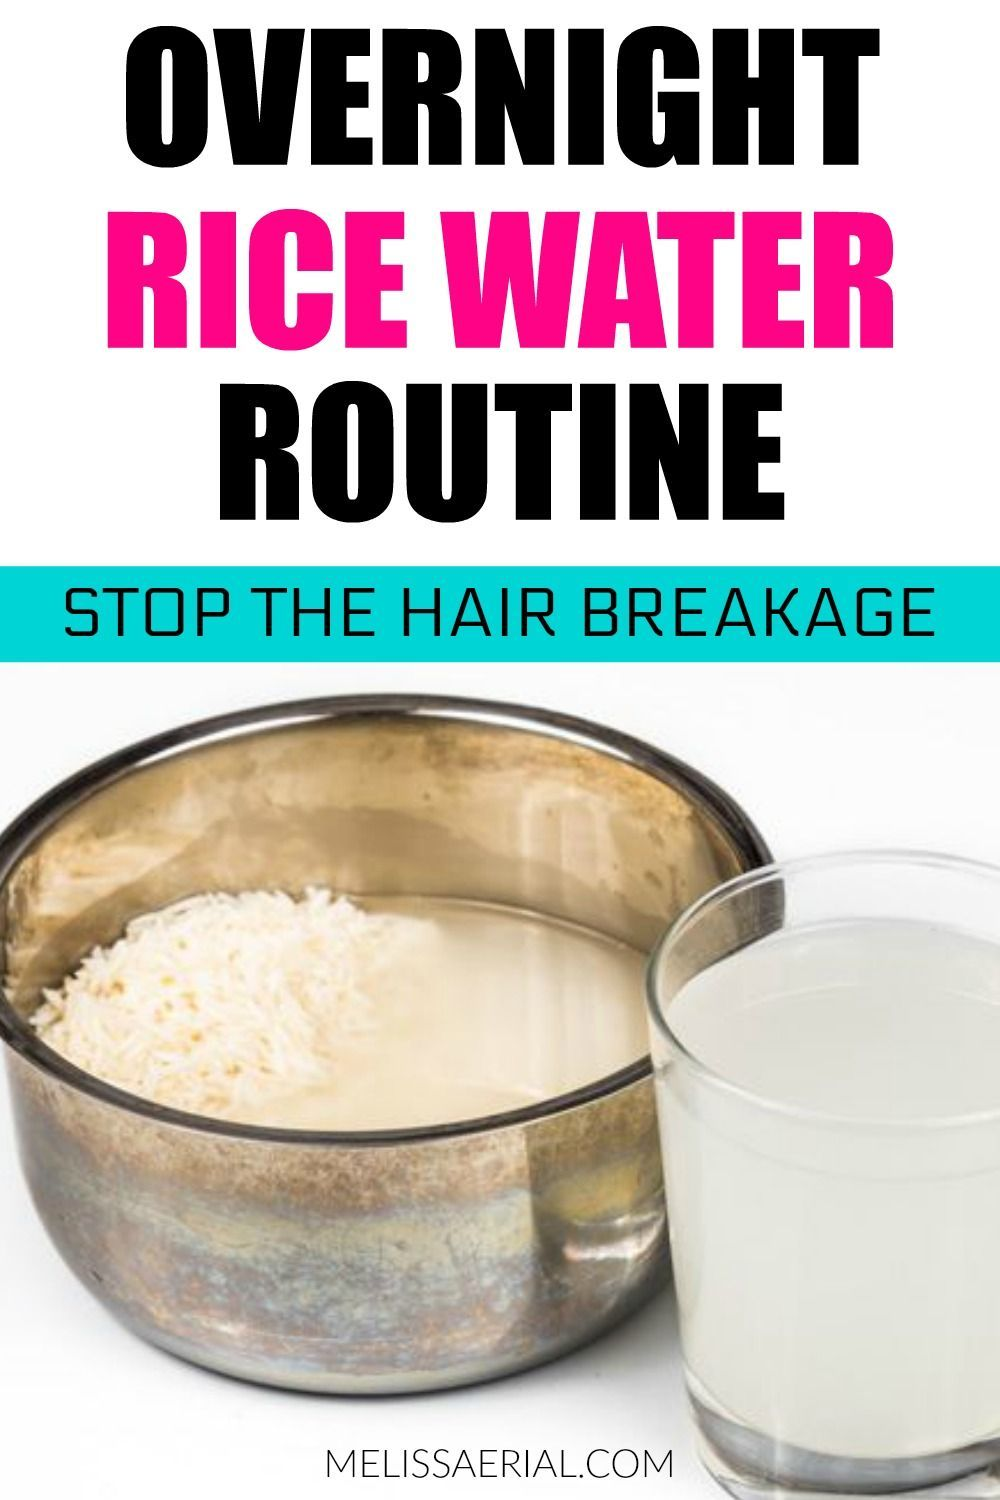 How To Properly Use Fermented Rice Water For Natural Hair Growth Hair Growth Foods Thick Hair Growth Hair Growth